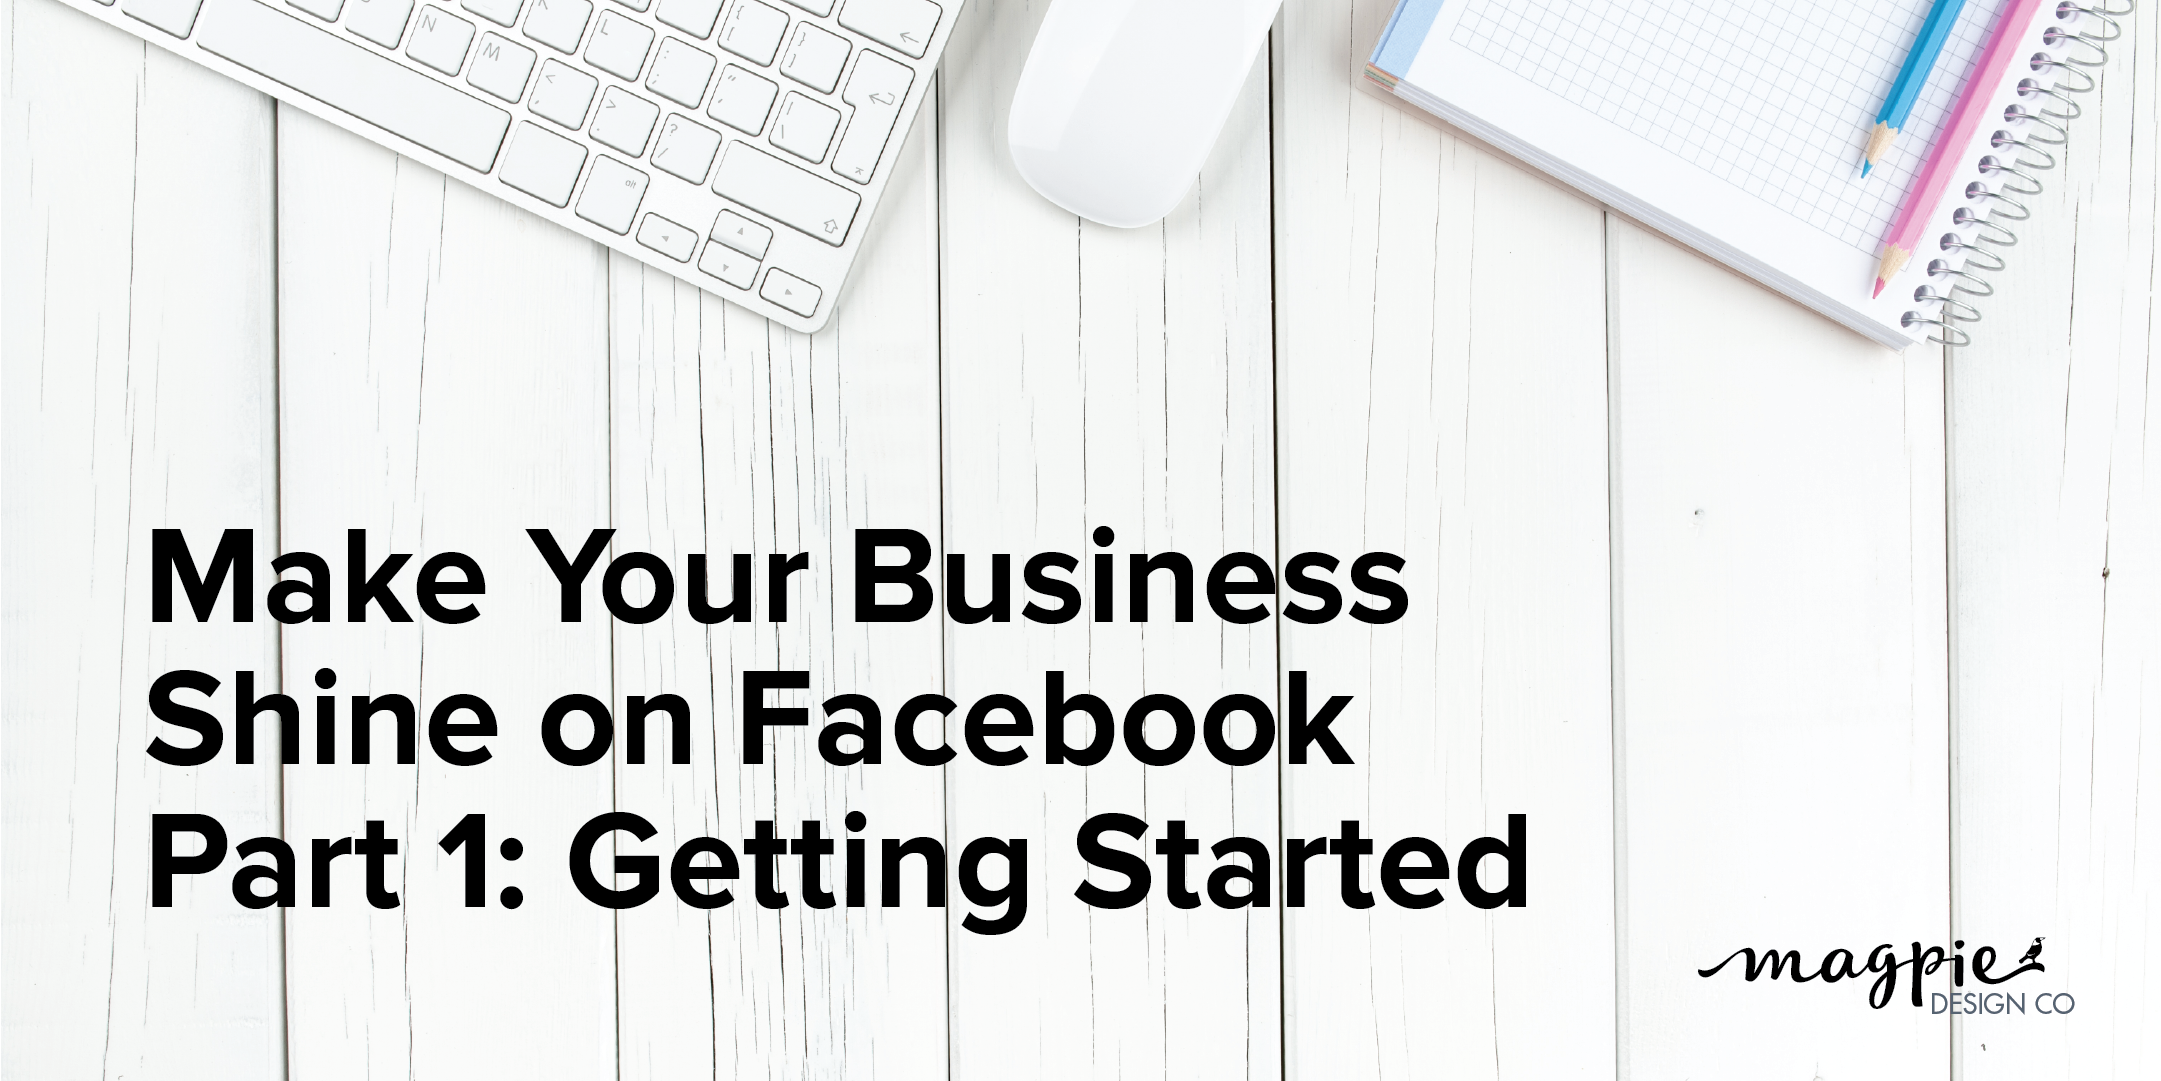 Make Your Business Shine on Facebook - Part 1: Getting Started